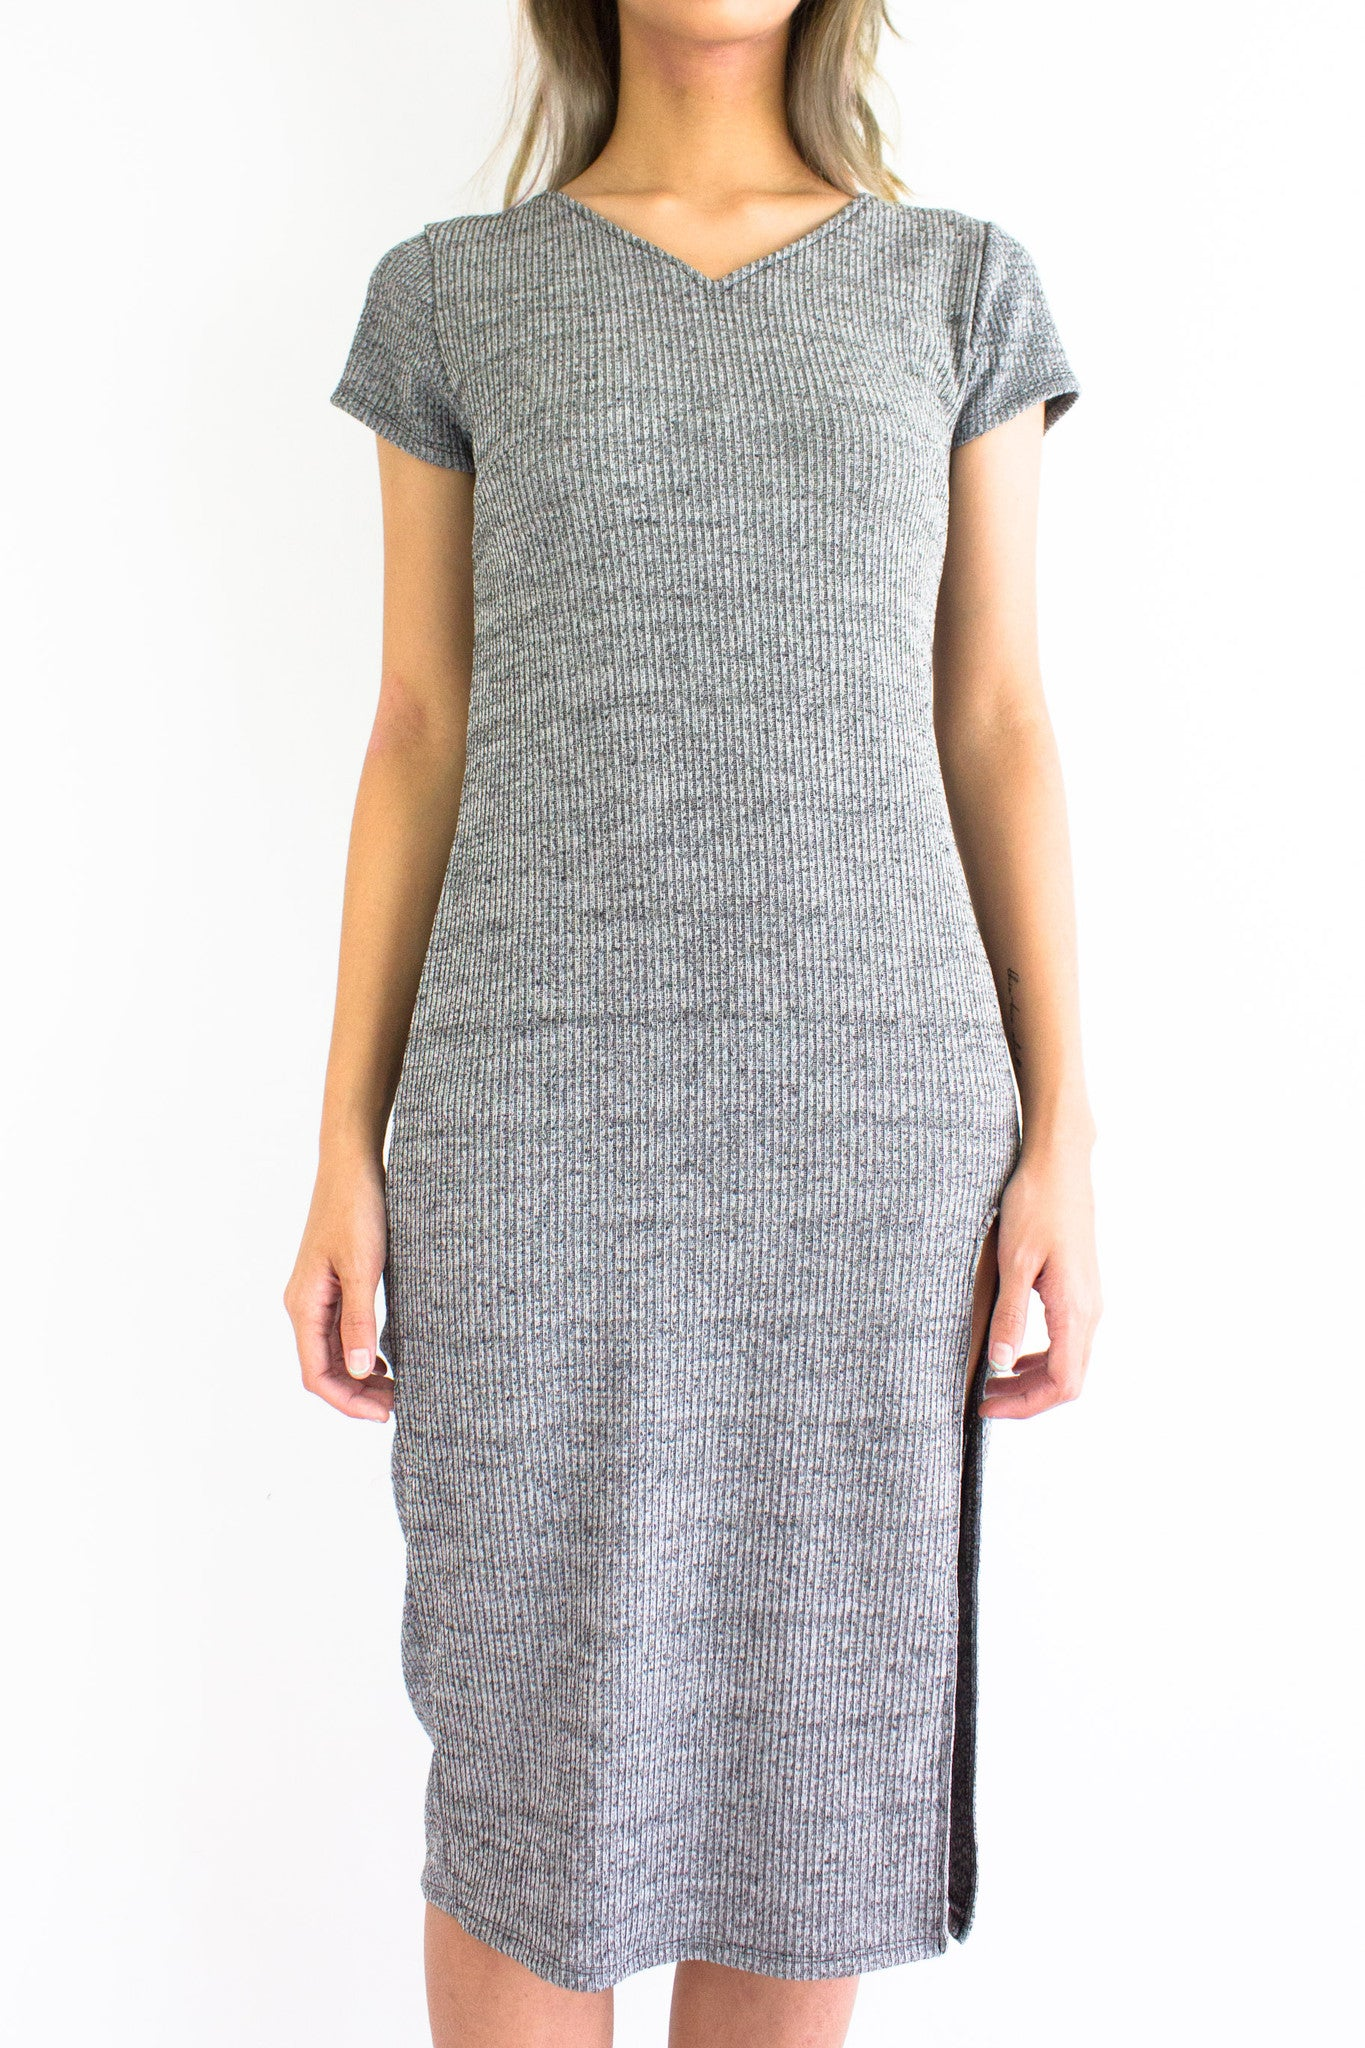 Knicely Knitted T-Shirt Midi Dress in Light Grey